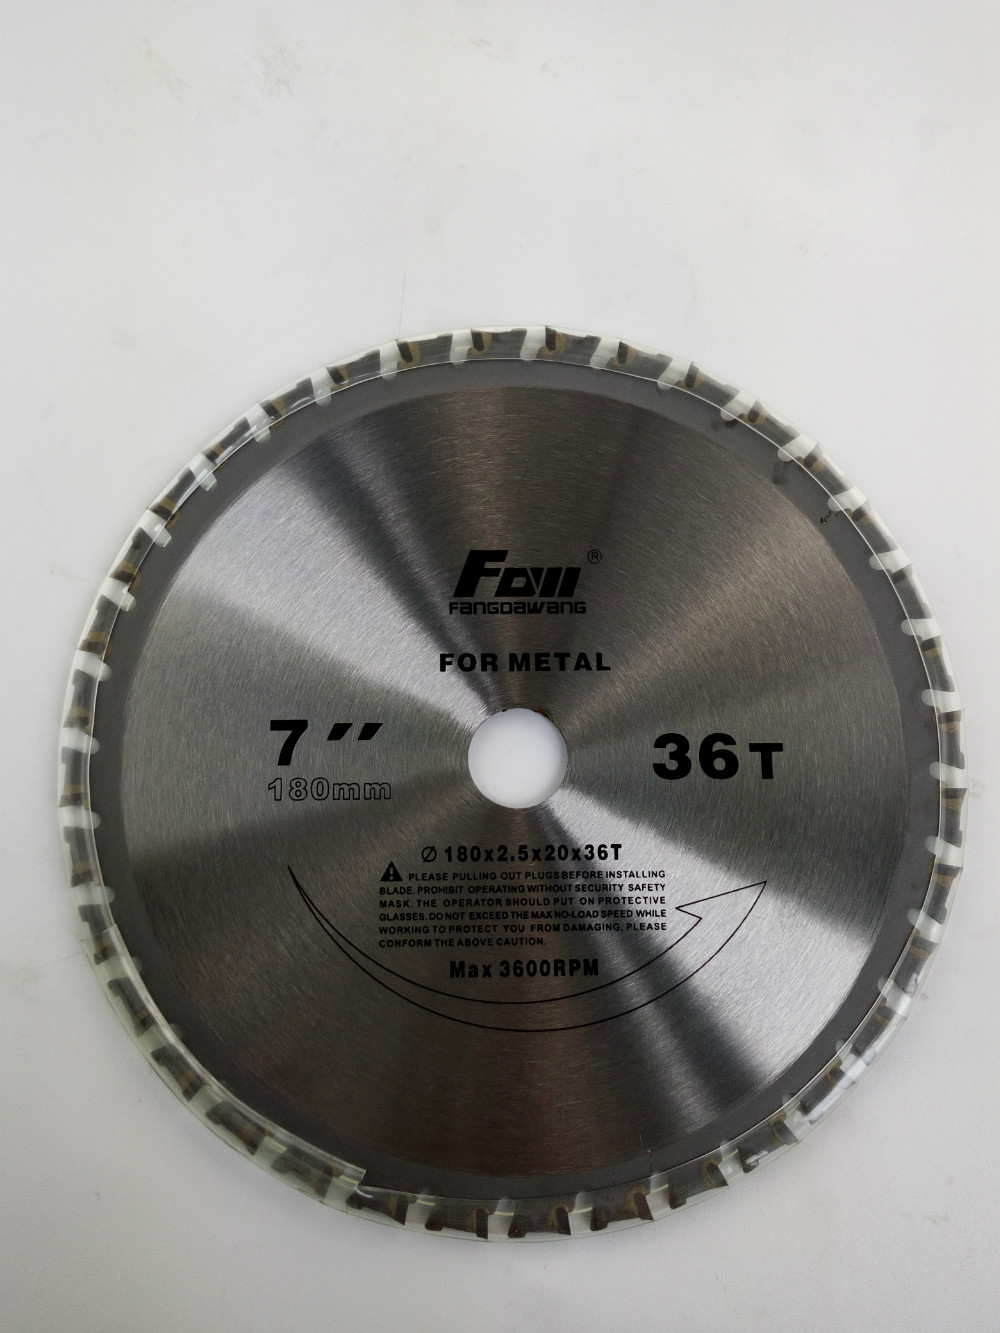 Free shipping fangdawang 7inch 36t tct saw blade for metal in saw free shipping fangdawang 7inch 36t tct saw blade for metal in saw blades from tools on aliexpress alibaba group greentooth Gallery